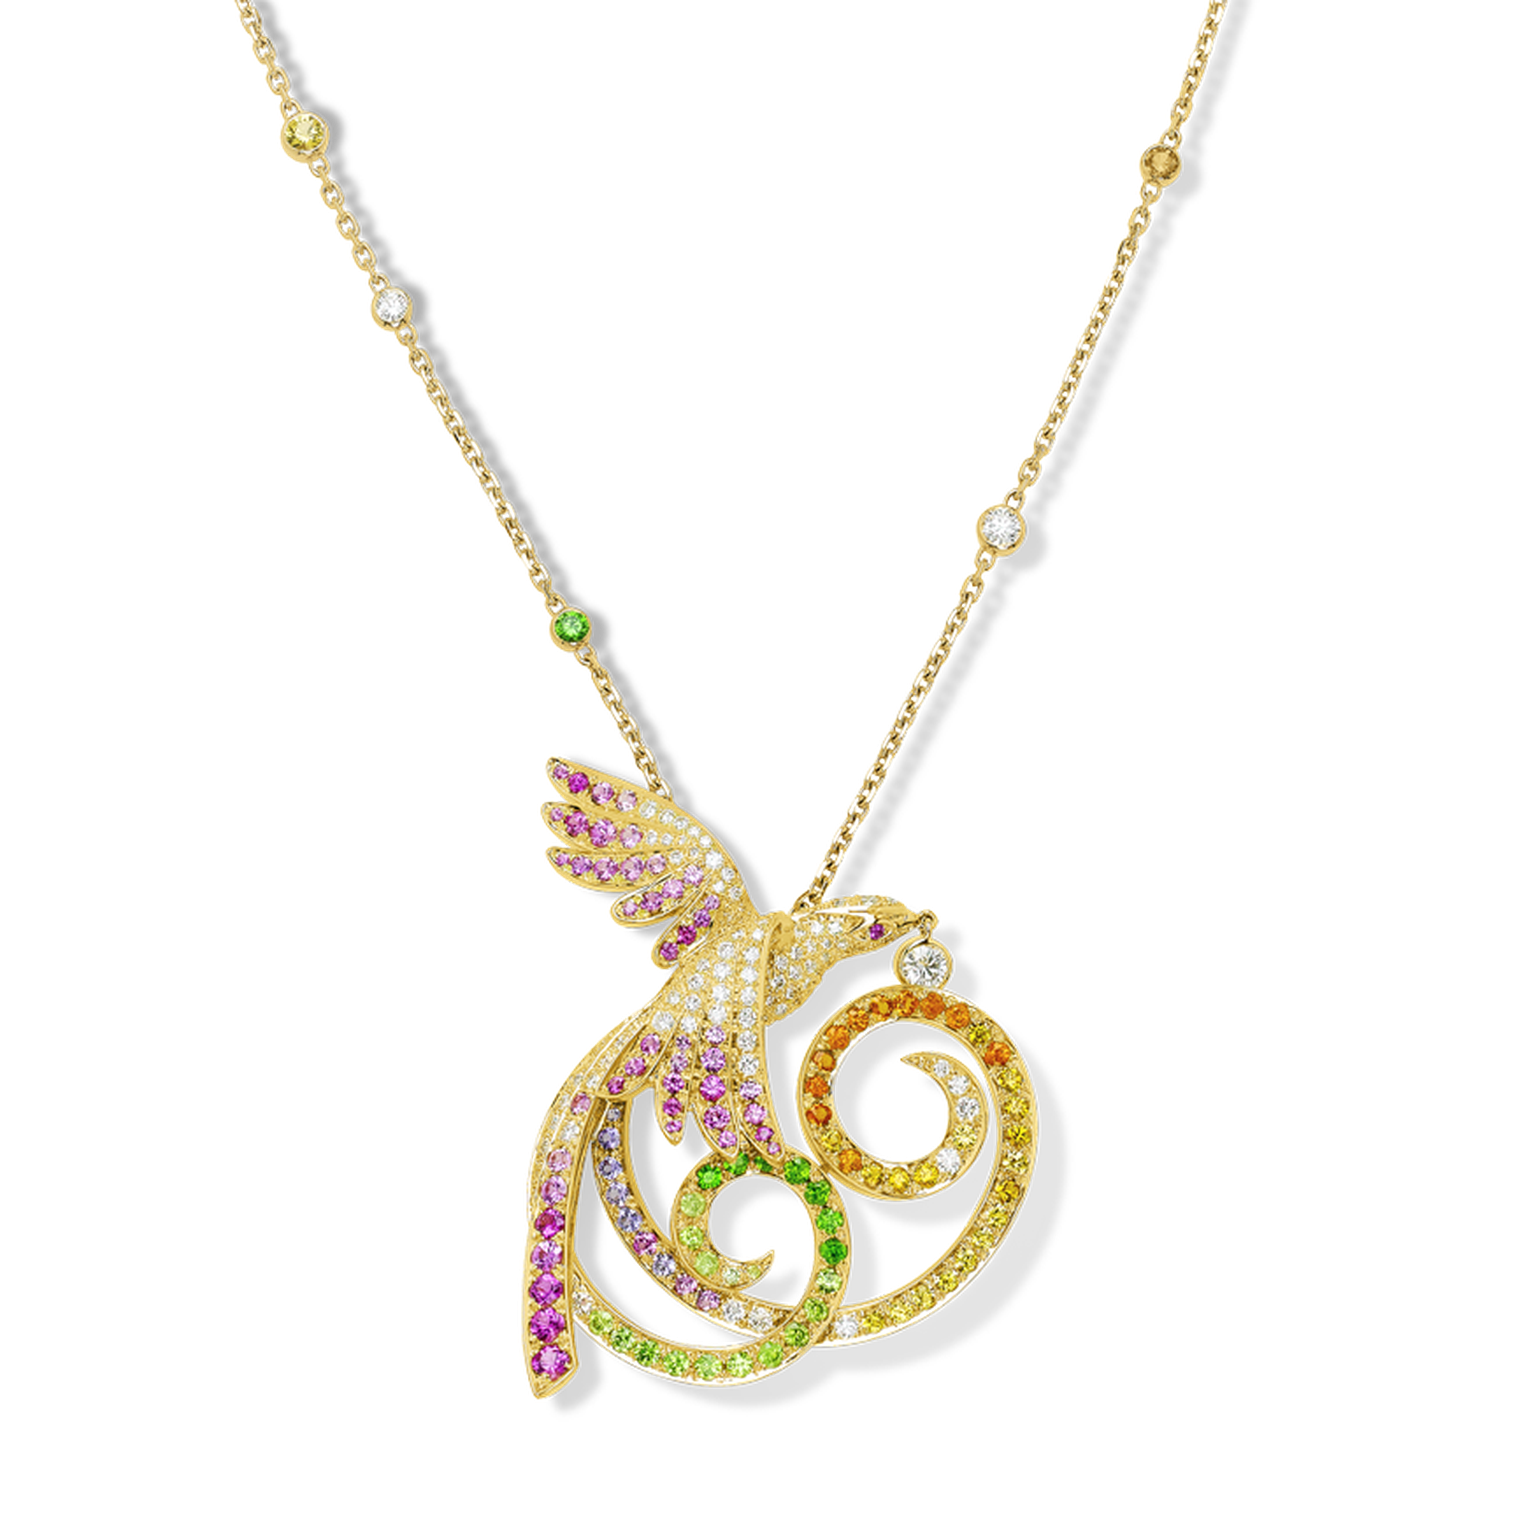 Van Cleef & Arpels Oiseaux de Paradis pendant in yellow gold with multi-coloured gemstones (£34,000).